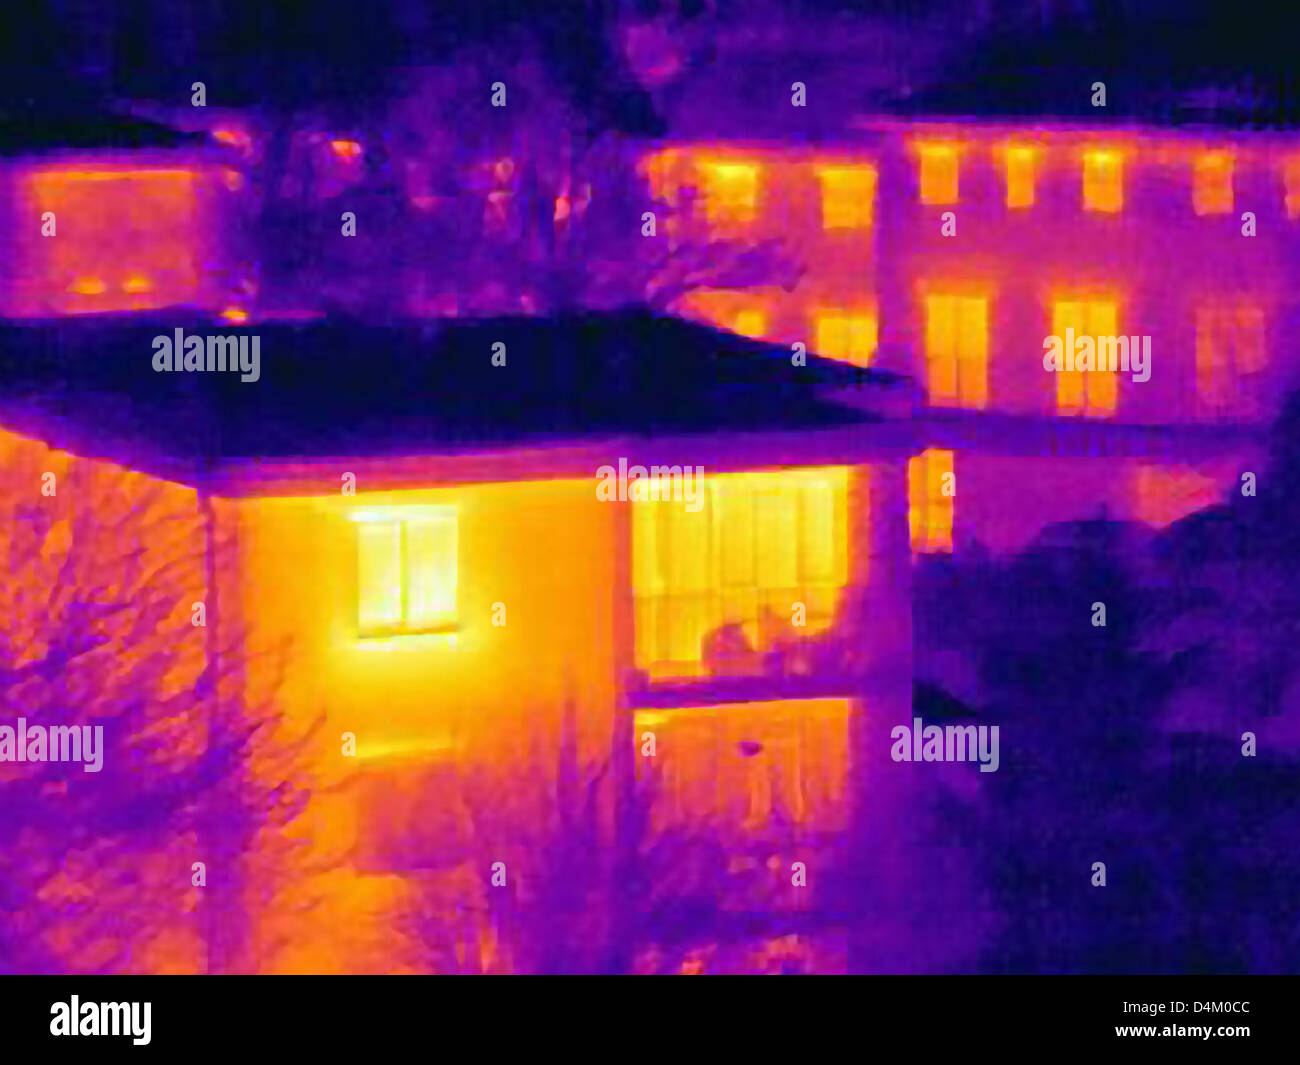 Thermal image of apartment buildings - Stock Image